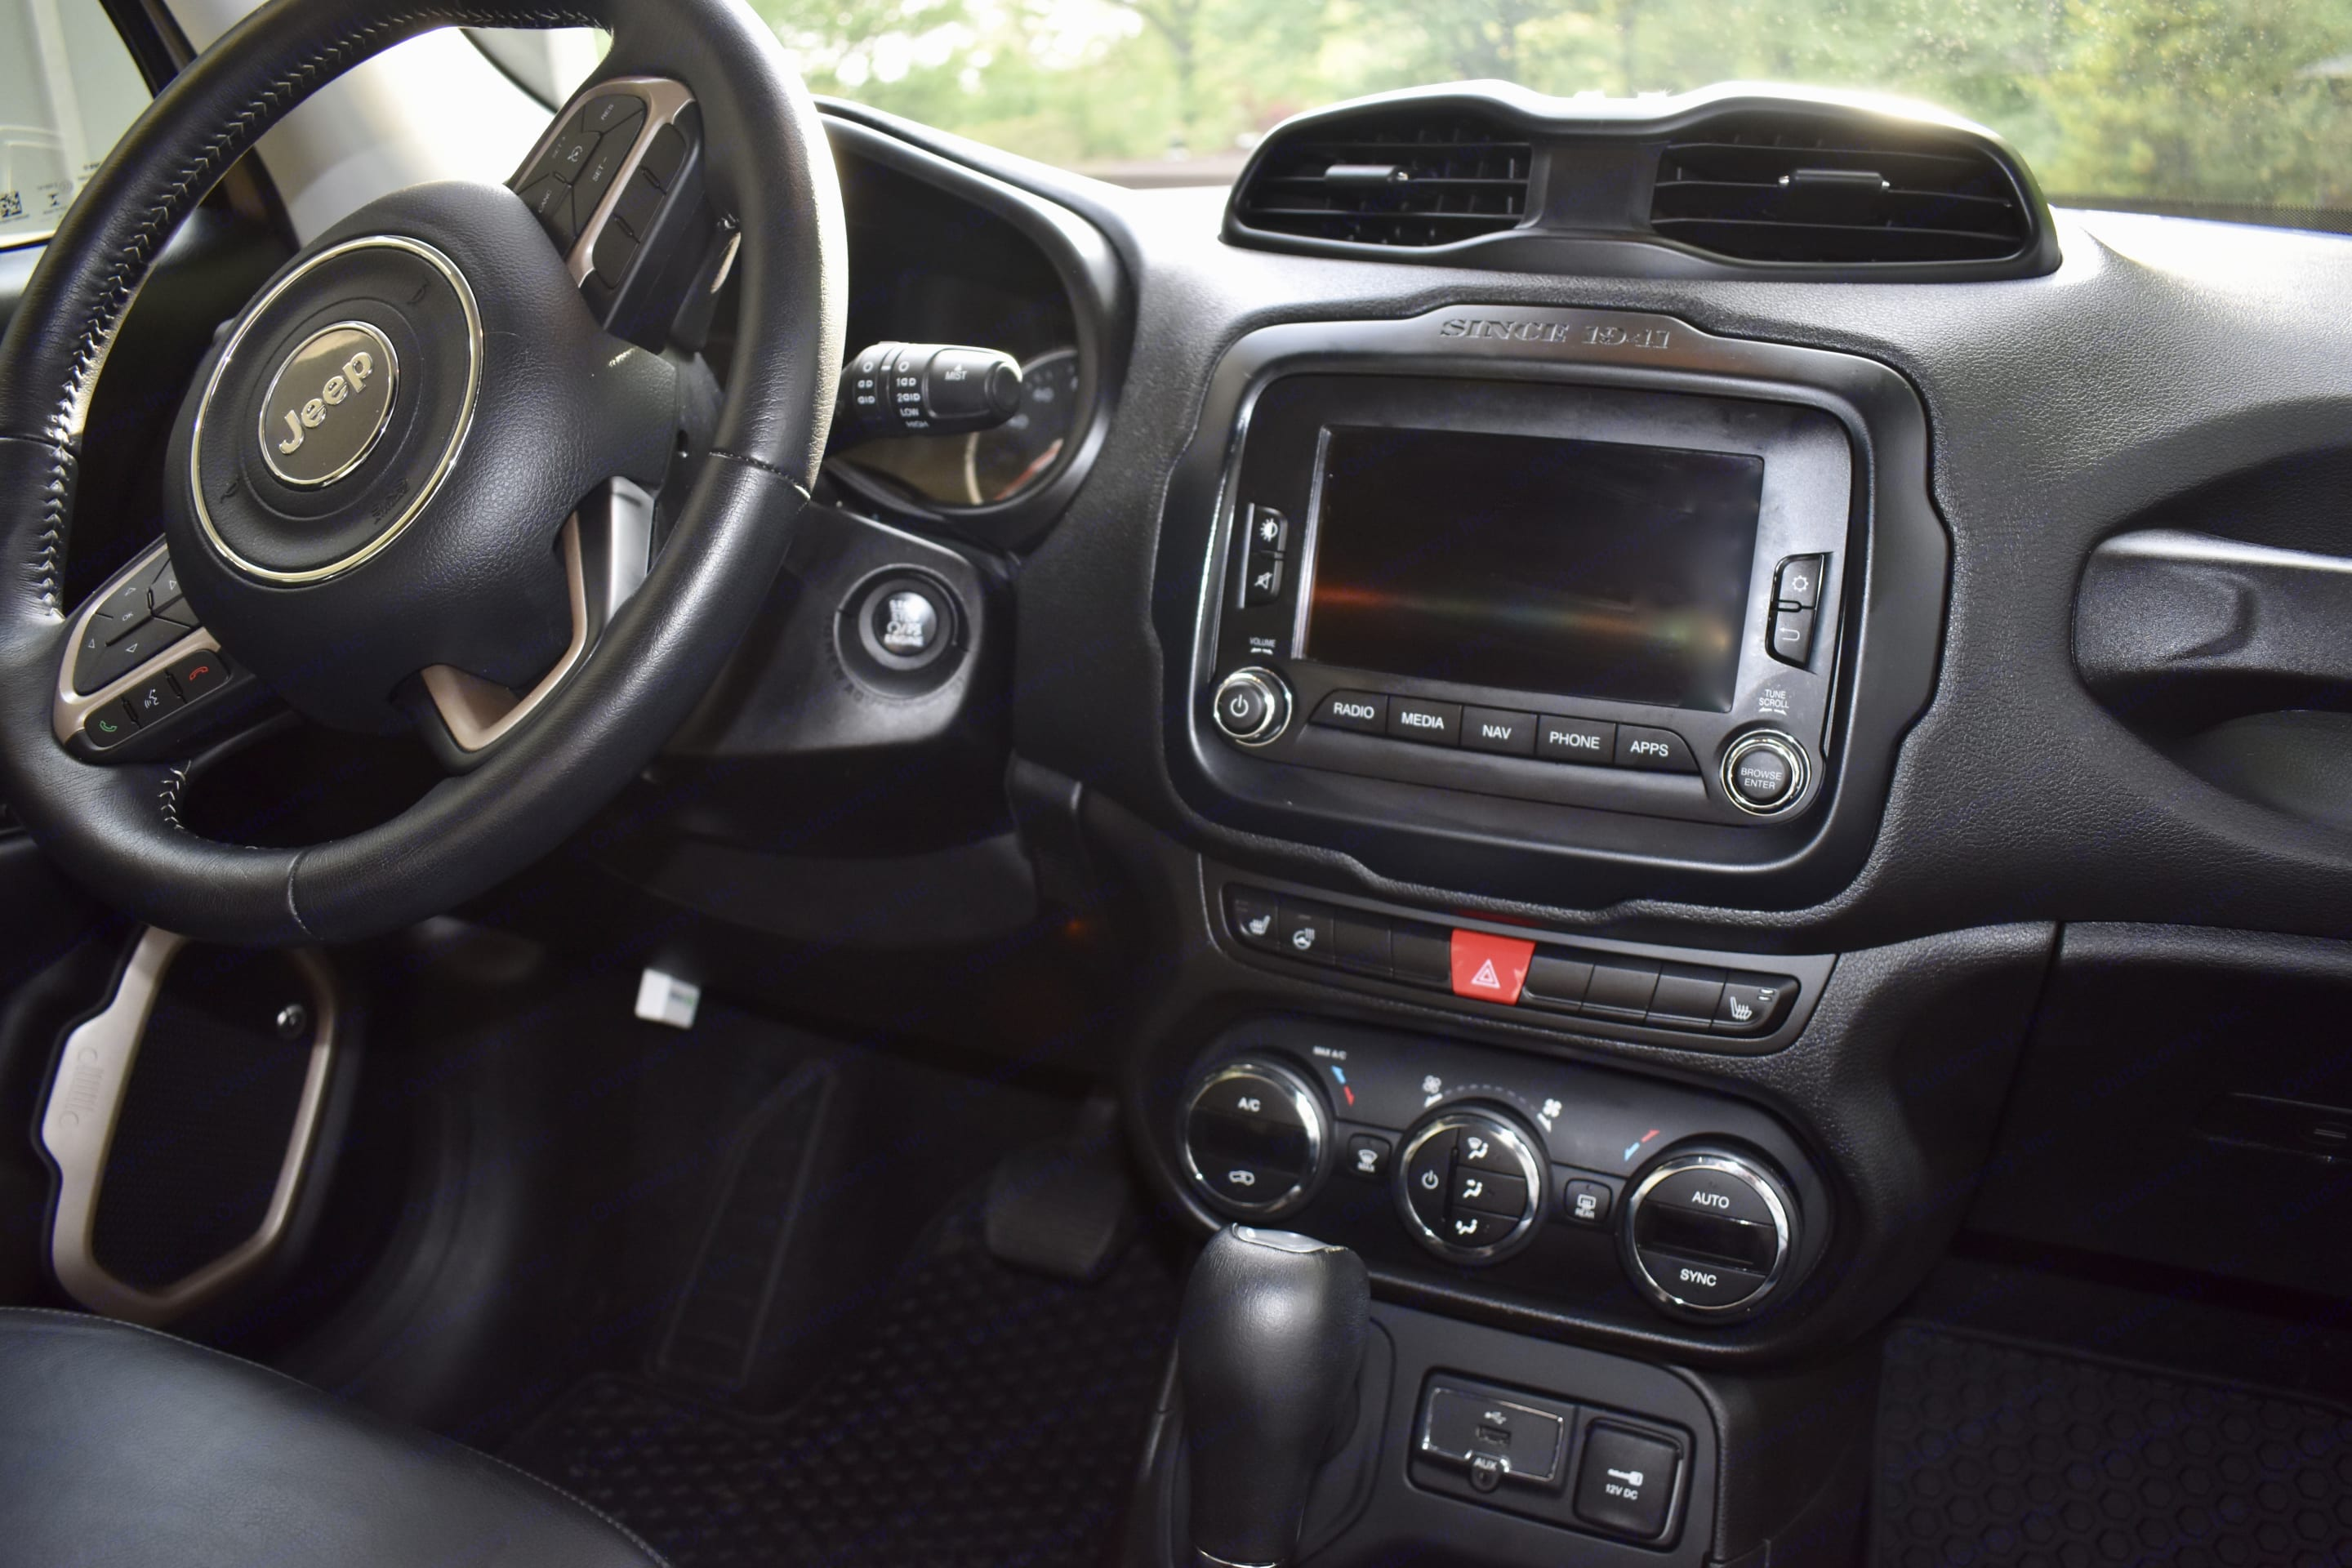 Onboard GPS equipped, heated seats and steering wheel, Beats Audio, 4X4, multi-terrain select, USB/Bluetooth connectivity. . Jeep Renegade 2017